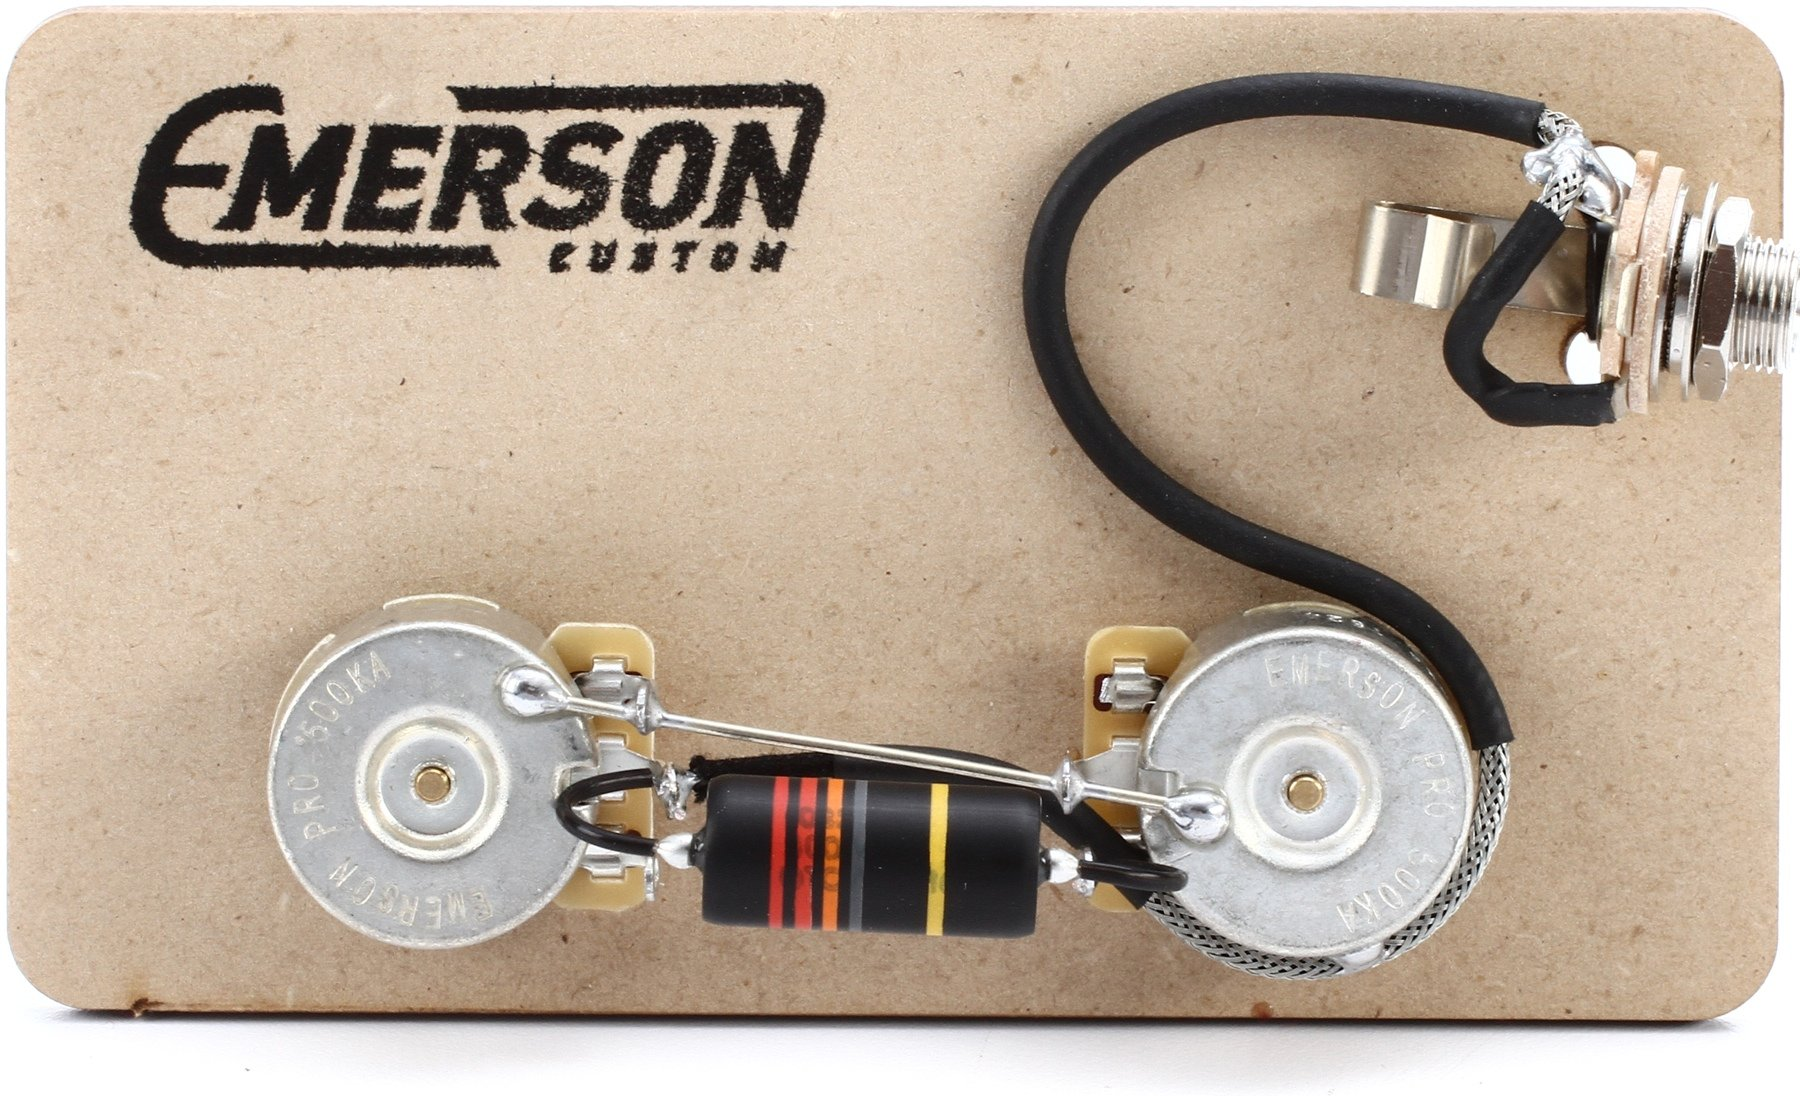 LPBBJR xlarge emerson custom prewired kit for gibson les paul junior sweetwater emerson les paul wiring harness at eliteediting.co